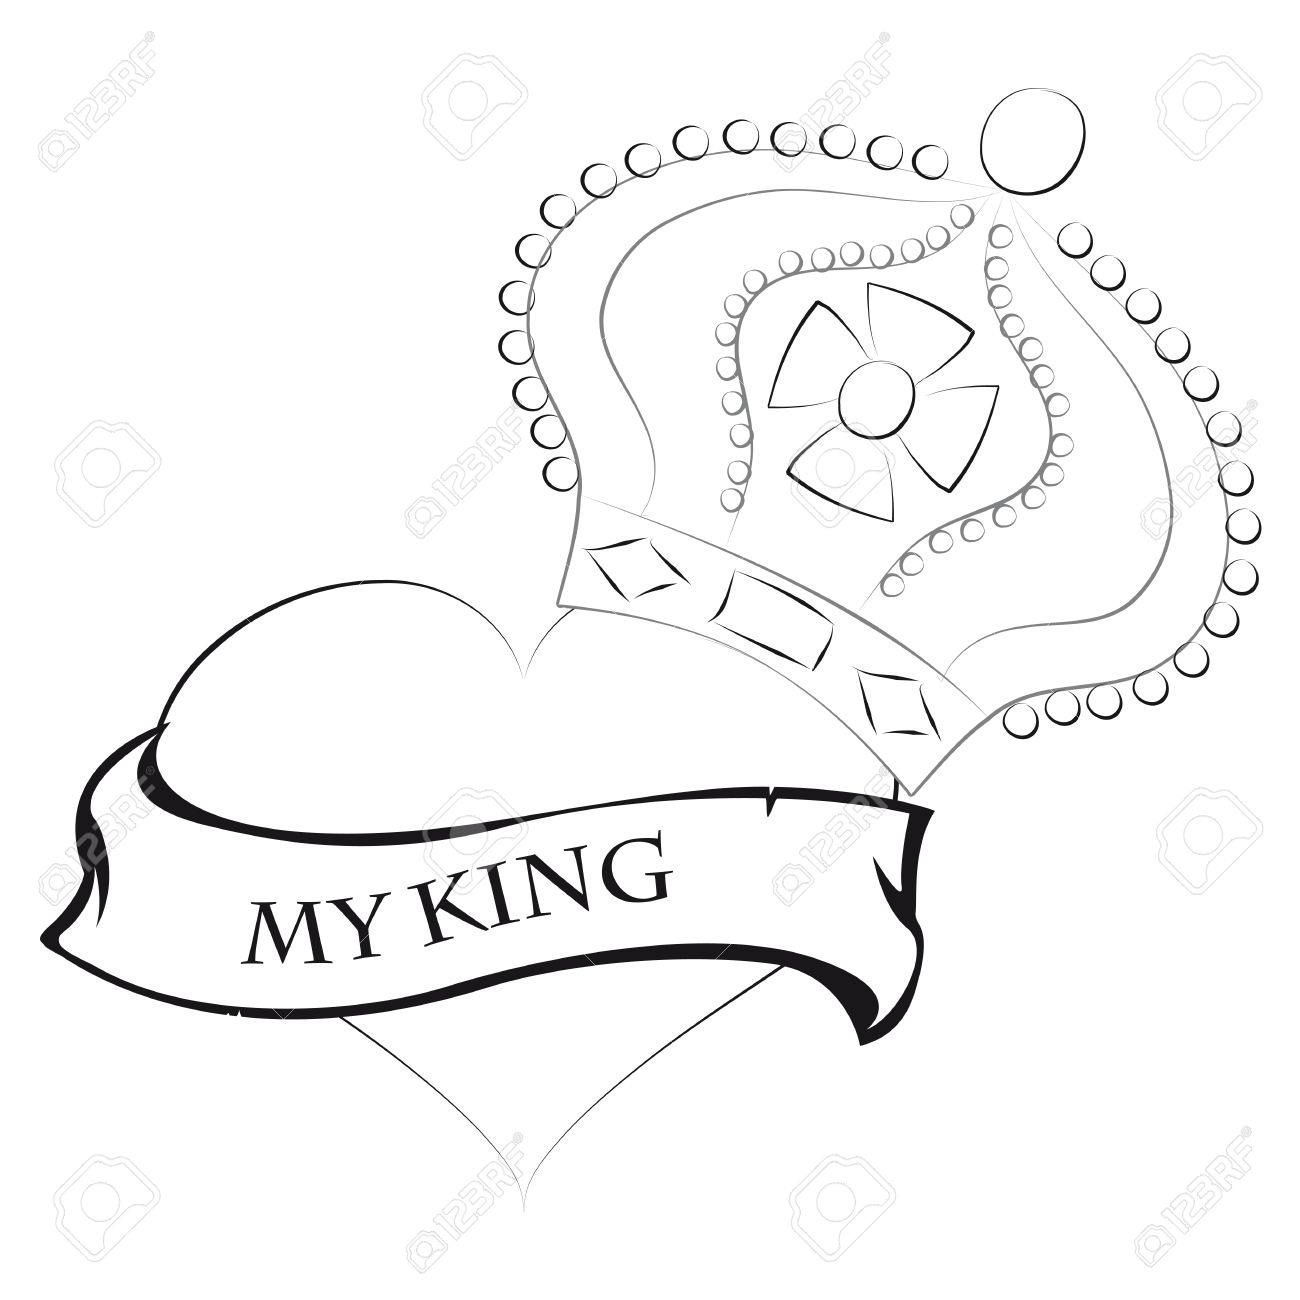 Pencil drawing of a heart shape with a king crown king and my text stock vector